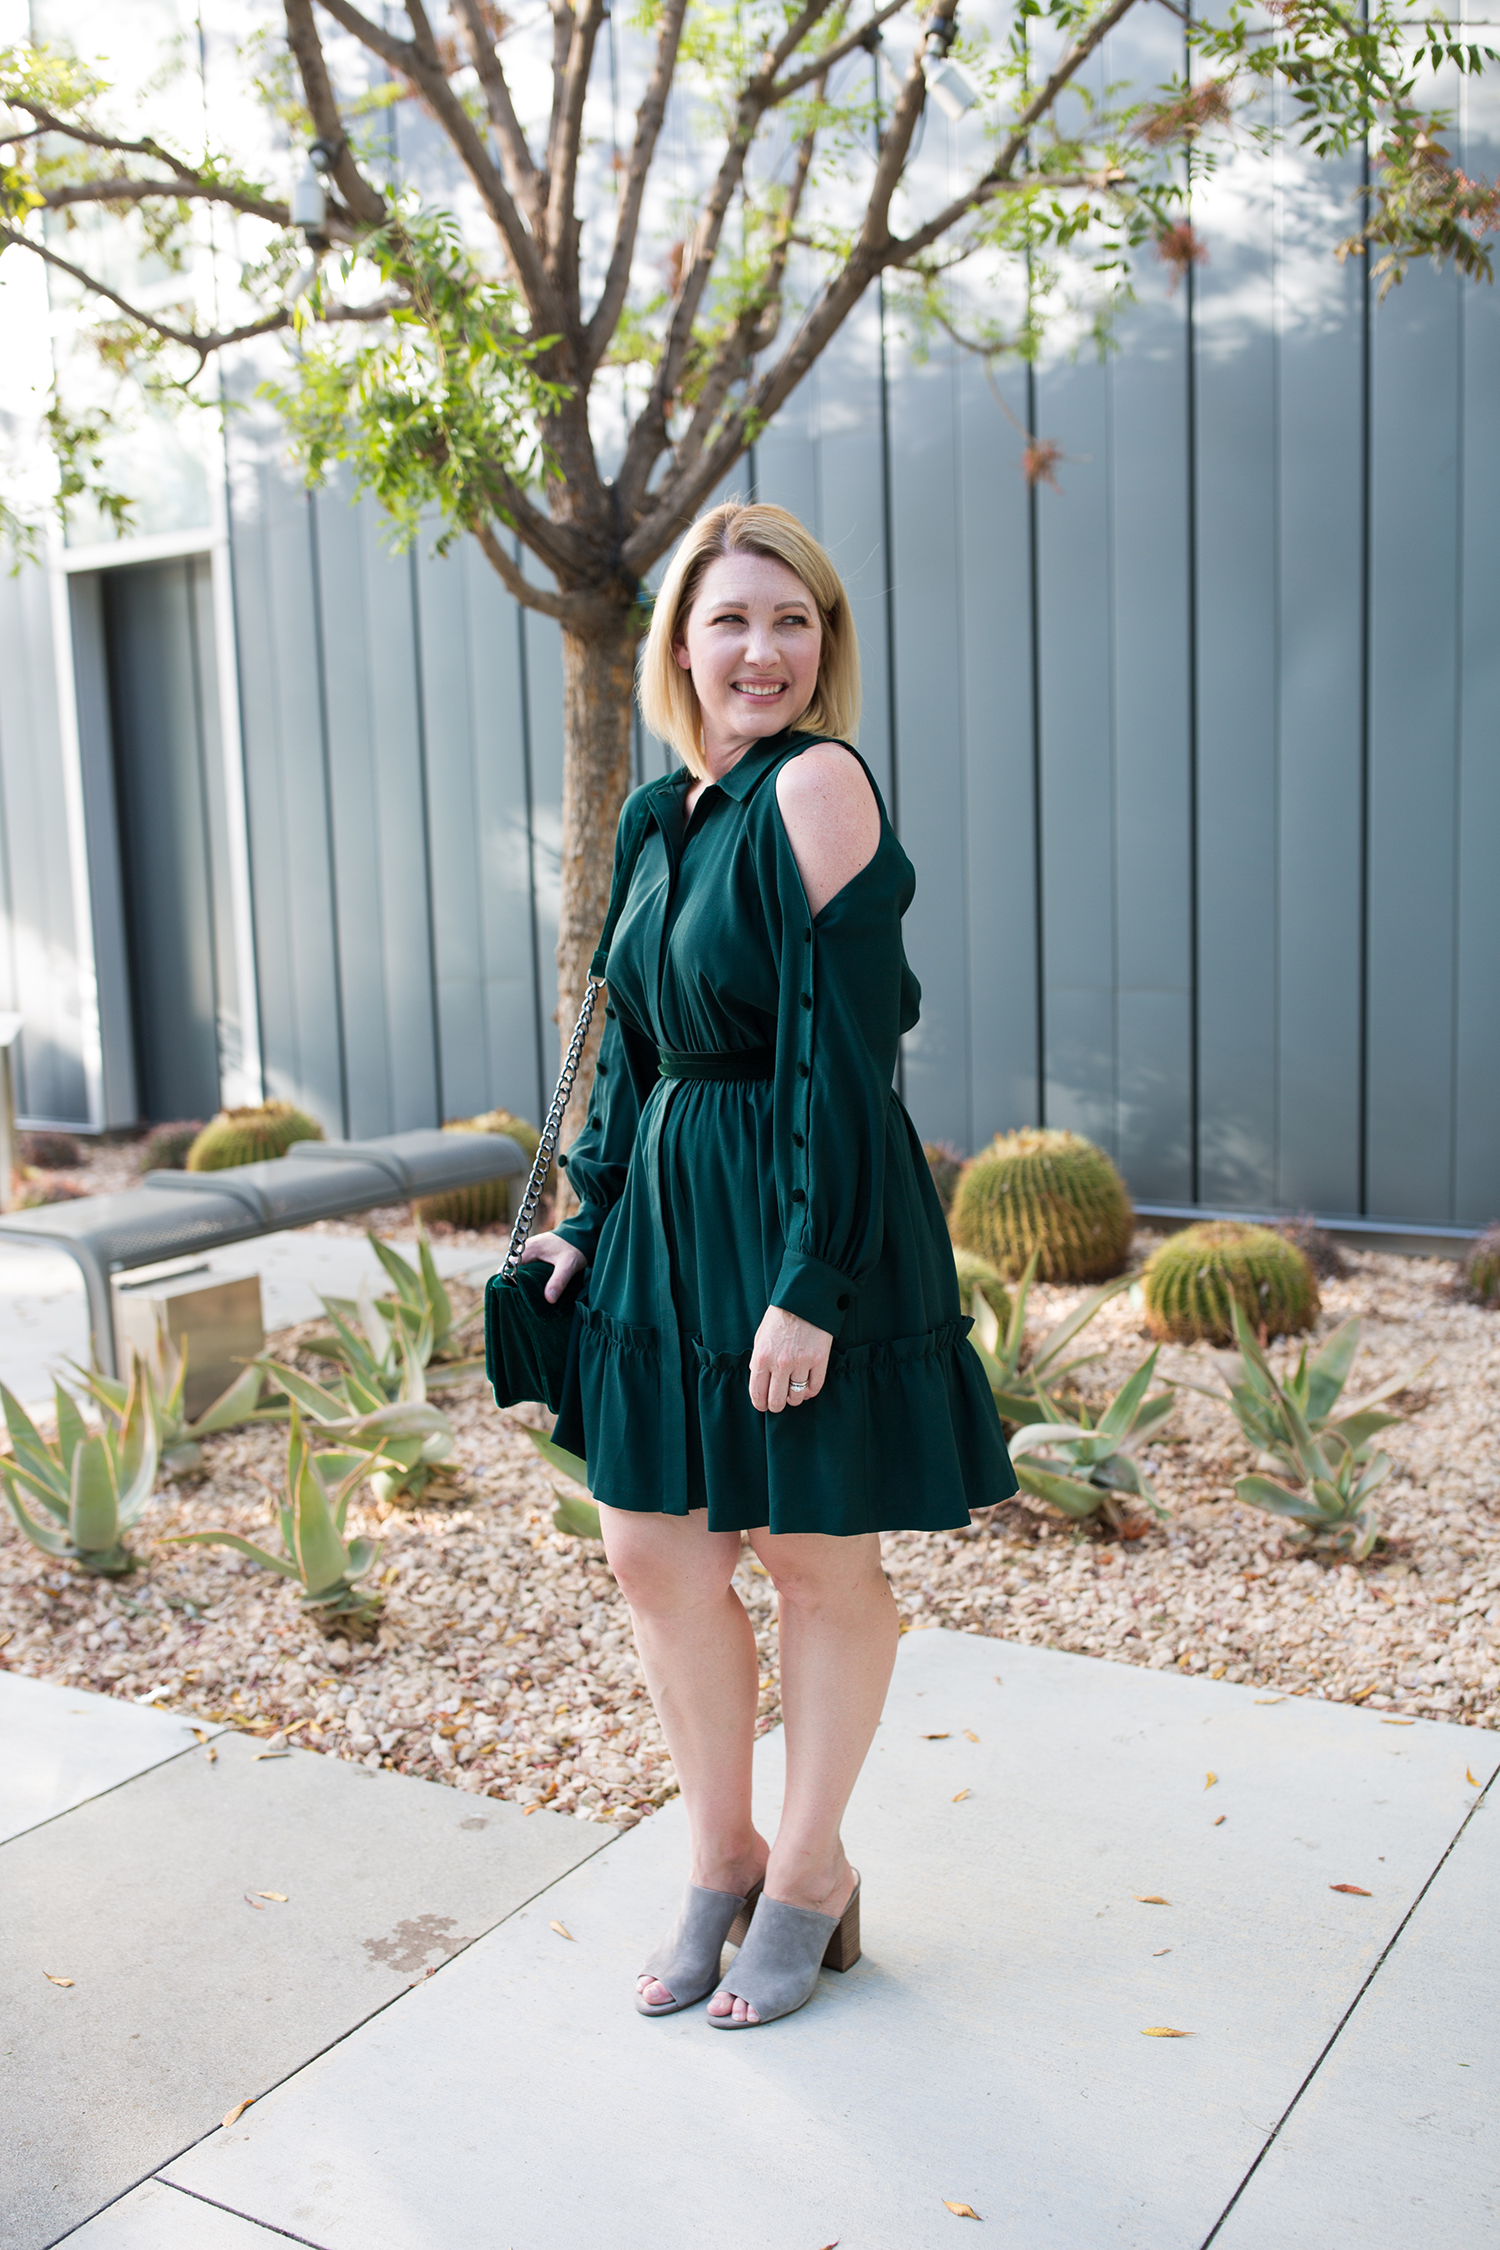 Searching for holiday dresses? I love this green cold shoulder dress for Christmas parties!